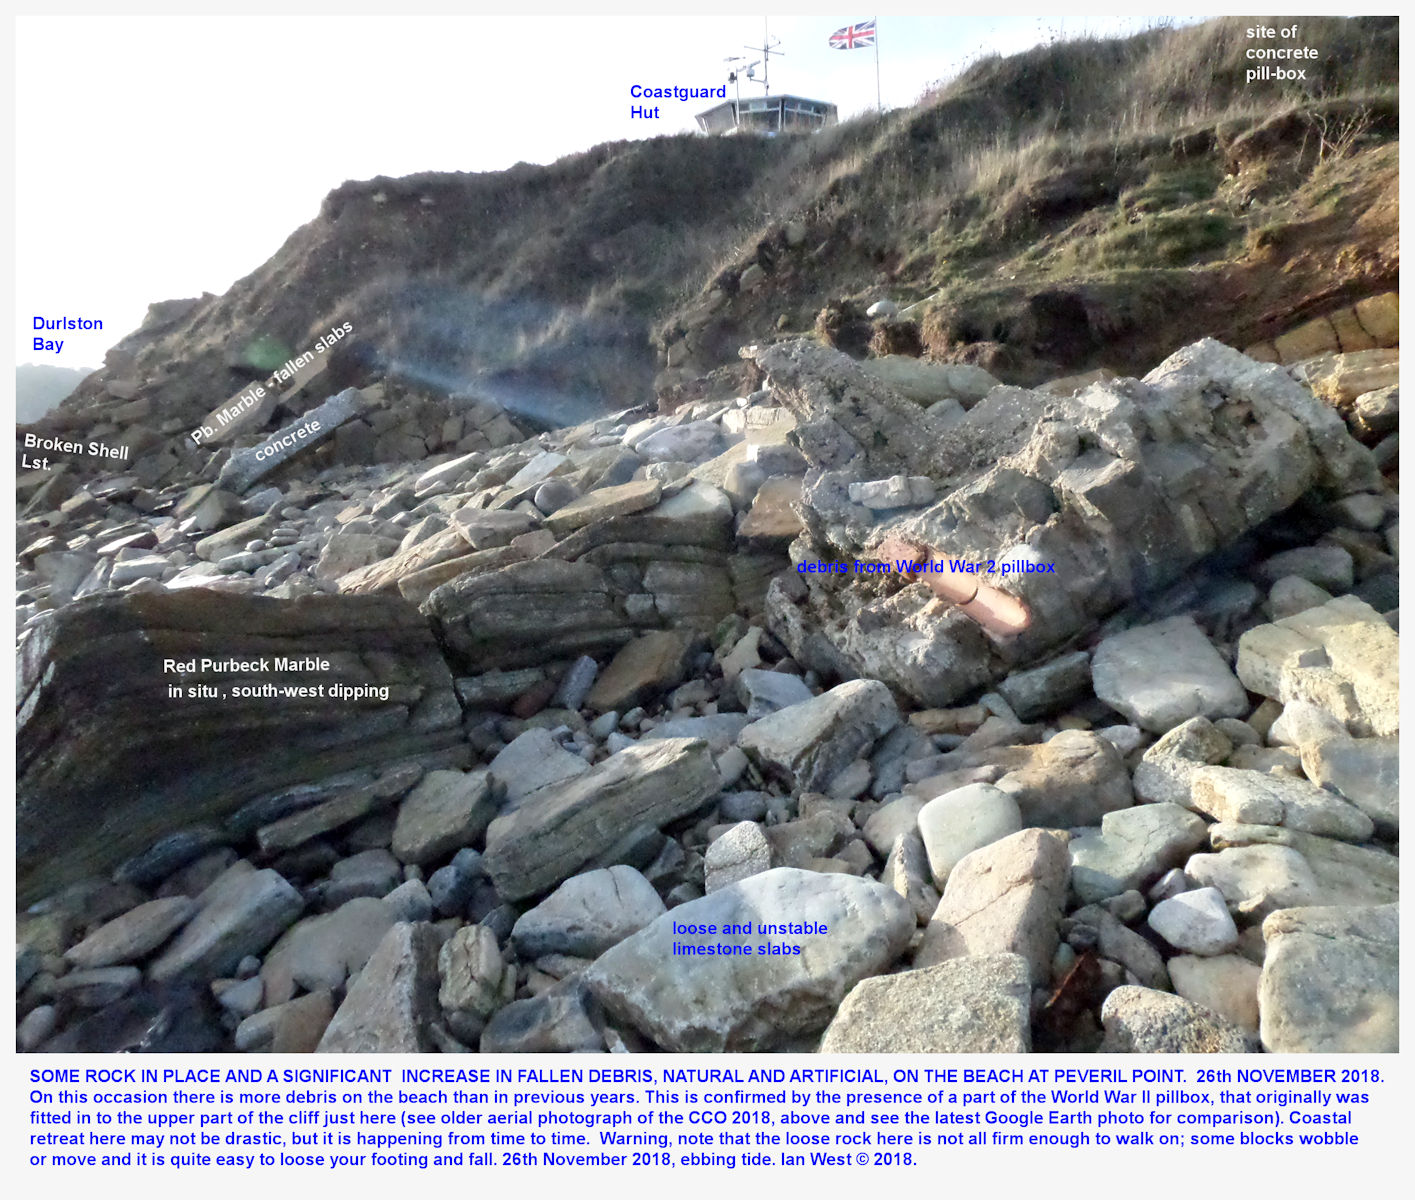 A ridge of Purbeck Marble, the Red Marble, on the beach at Peveril Point, Durlston Bay, Dorset, November, 2018, with debris from the fallen remains of the former gun emplacement and viewpoint, above, in the cliff